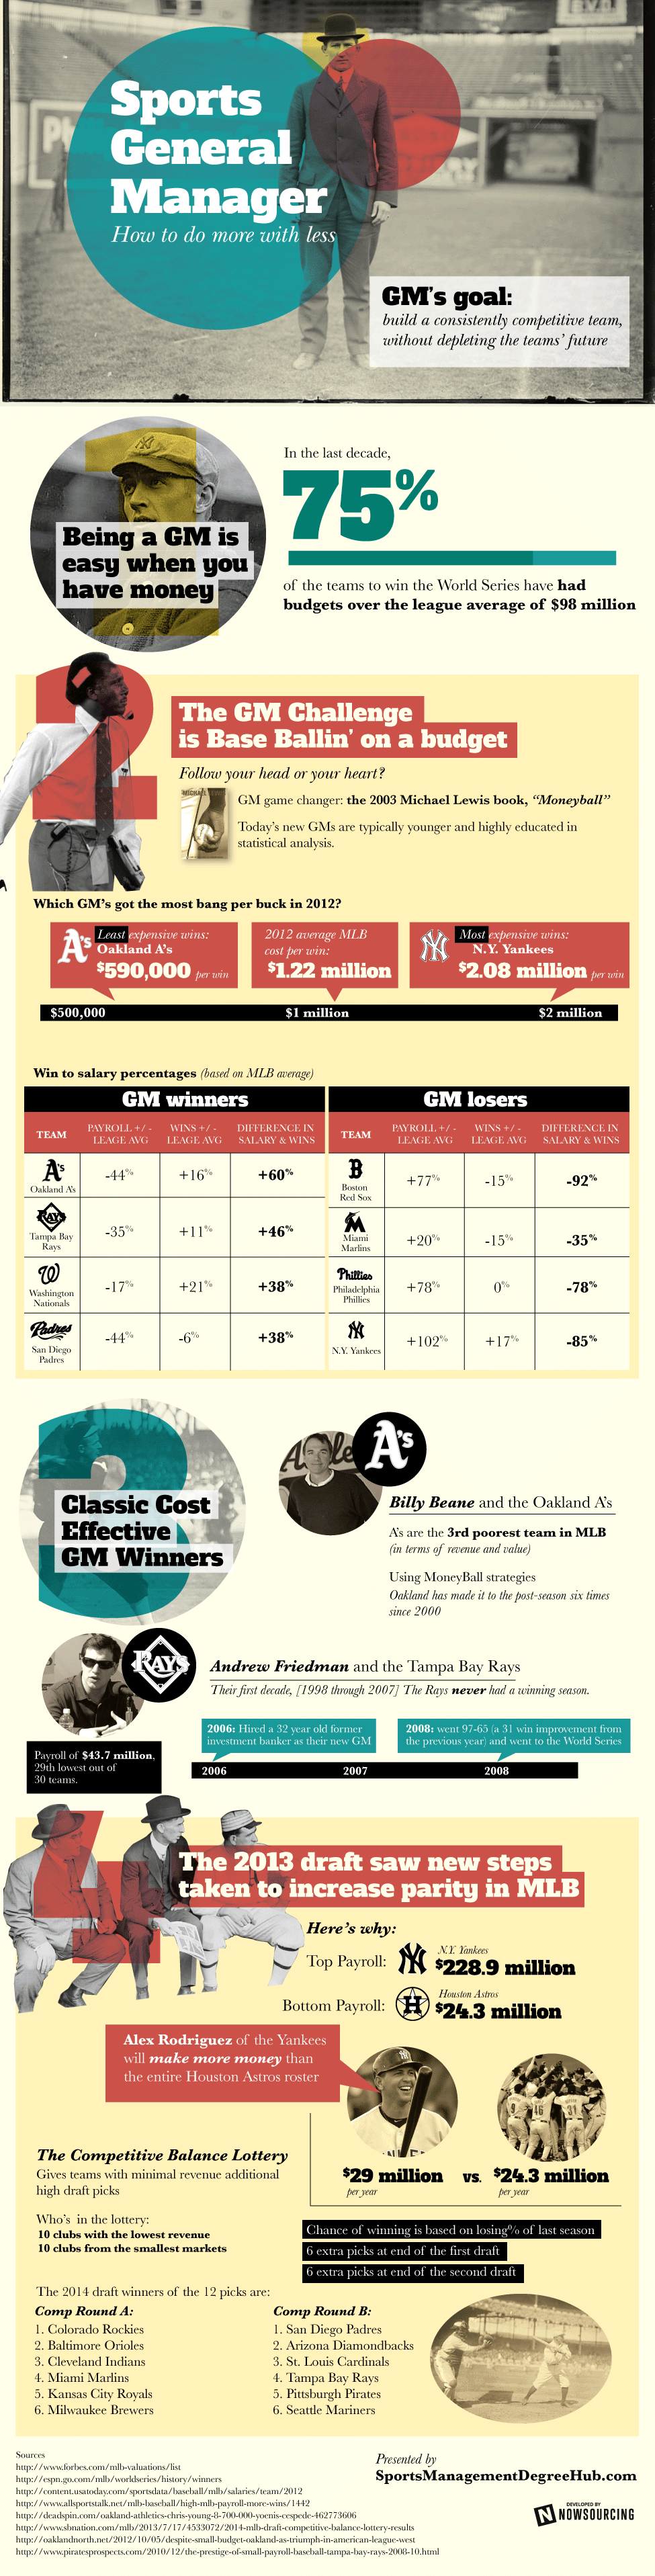 Sports General Managers - How To Do More With Less